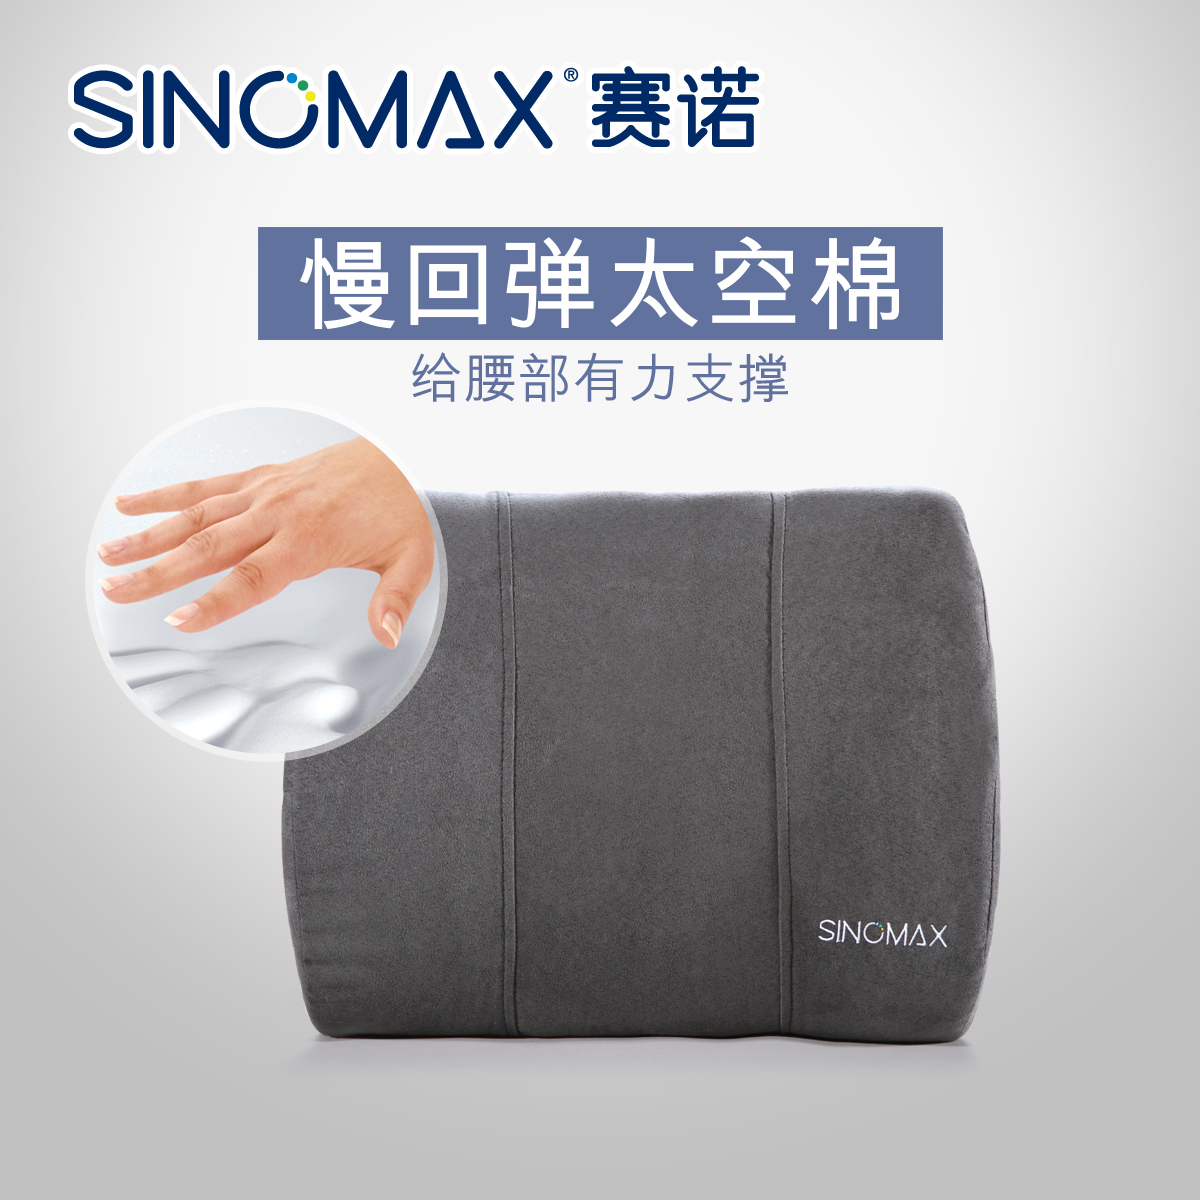 Sinomax Memory Foam Traditional Travel Pillow : [USD 81.09] SINOMAX Shiner, memory foam pillow car waist support cushion car office travel with ...